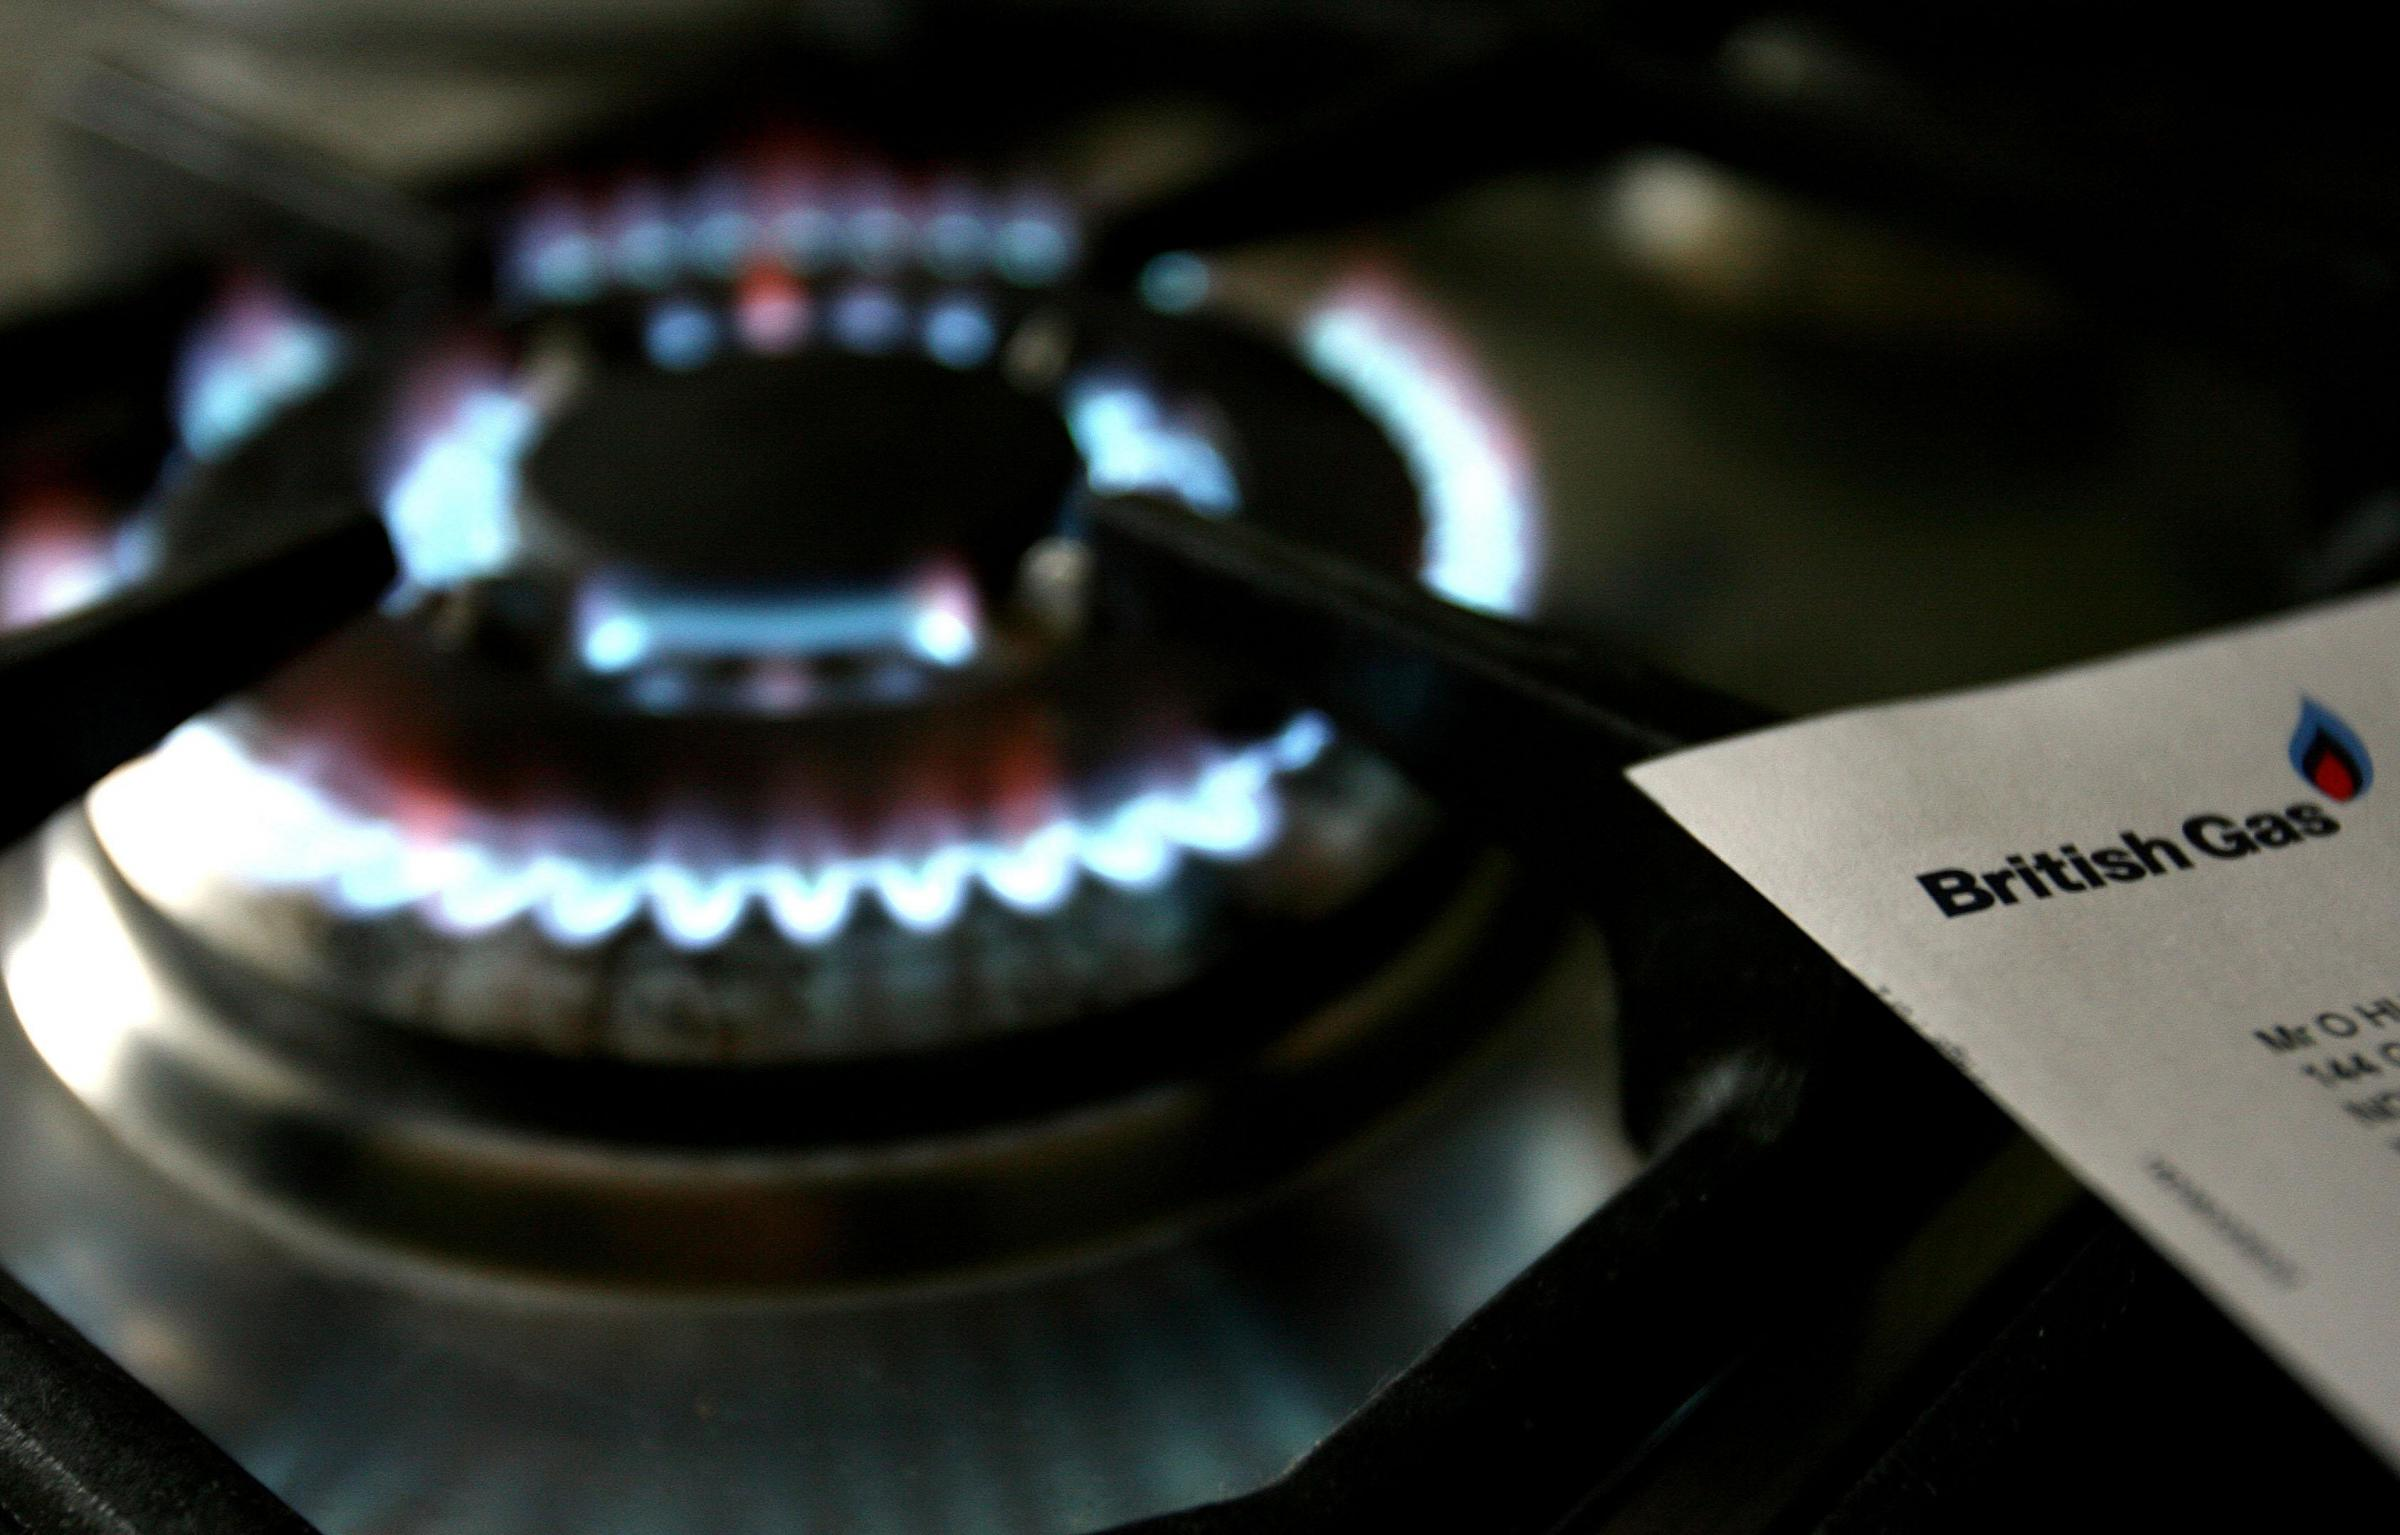 British Gas is raising the cost of its standard variable tariff by 3.8%. Photograph: PA